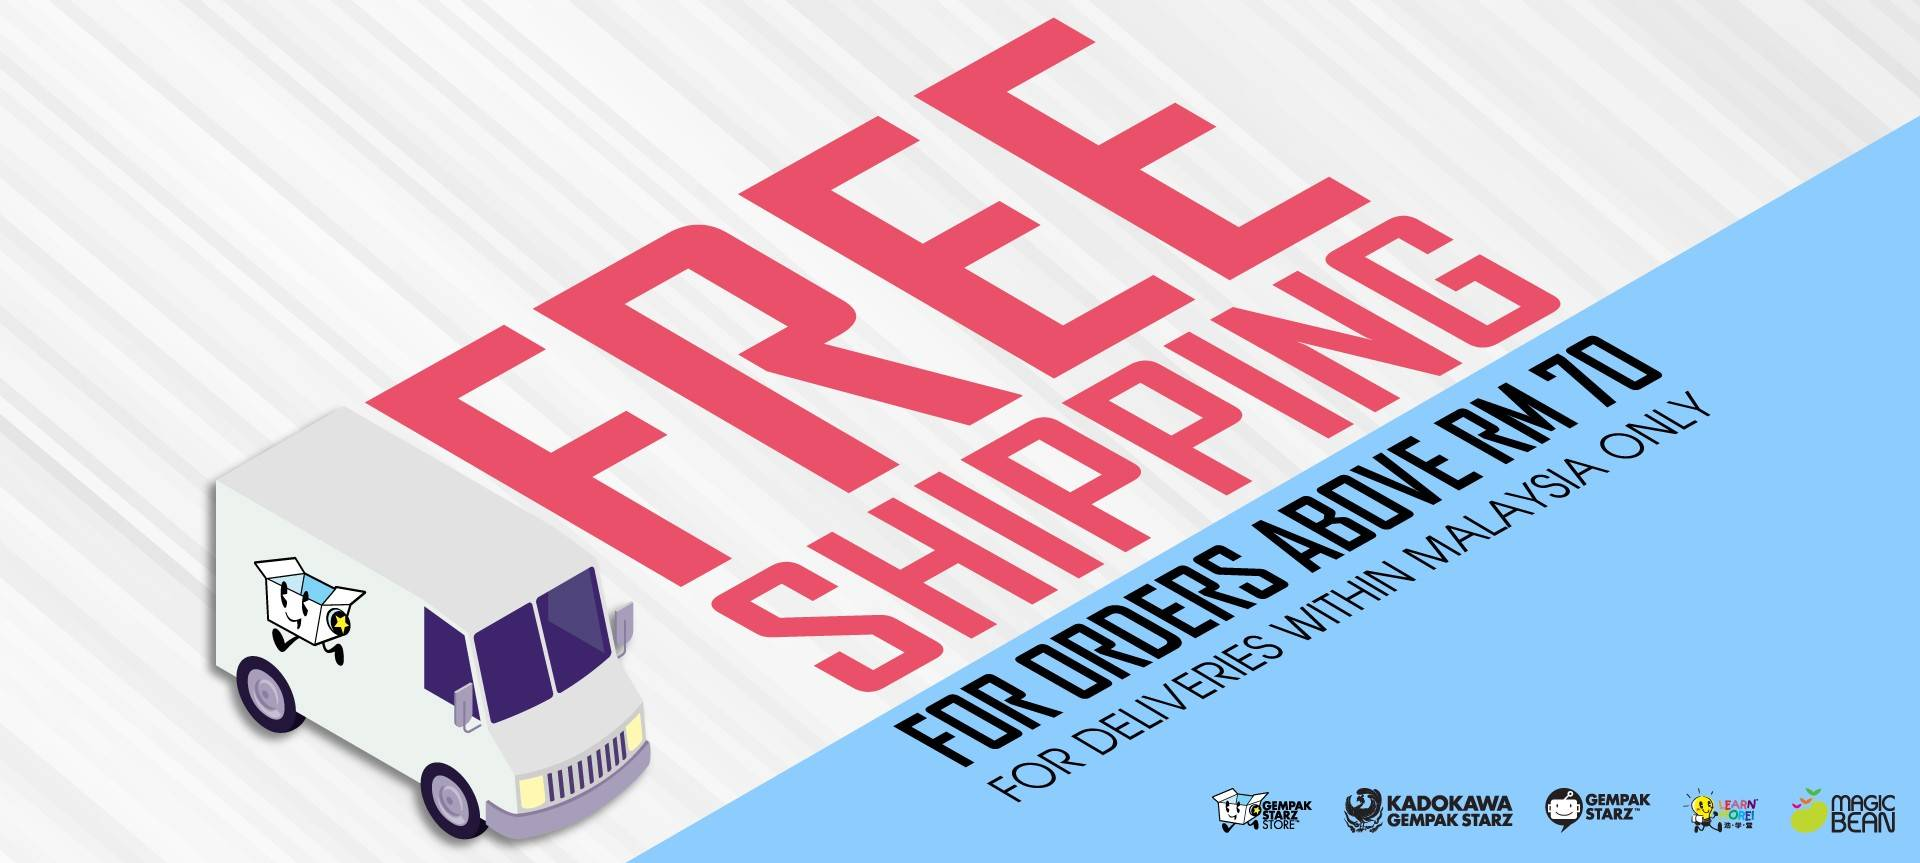 Free Shipping min. purchase RM70